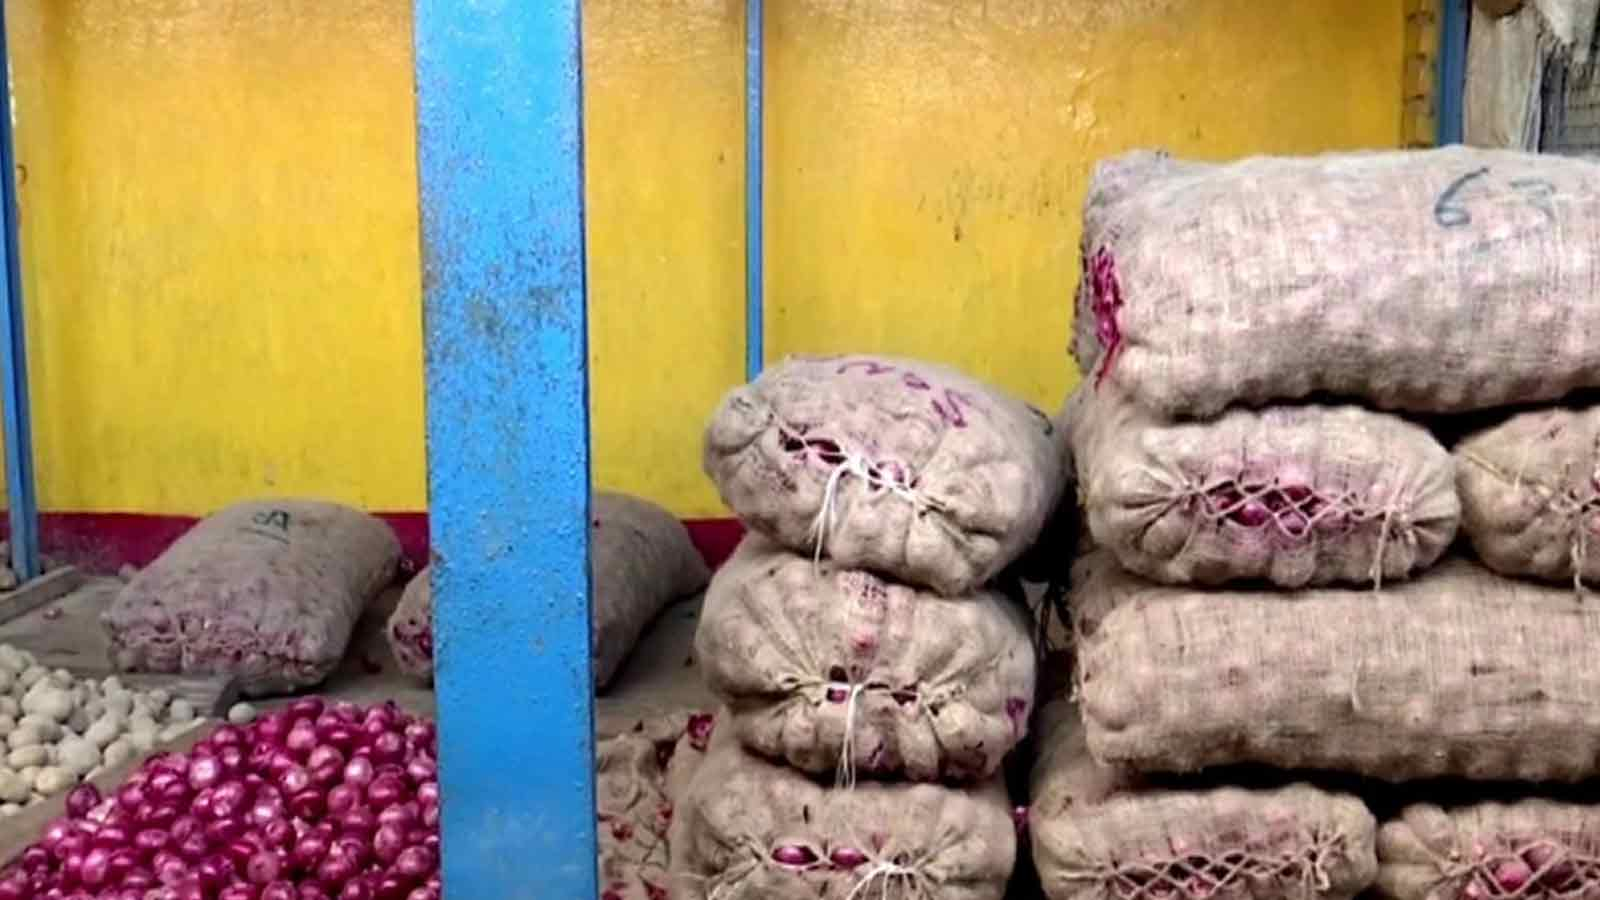 rise-in-onion-prices-leaves-people-teary-eyed-in-bhubaneswar